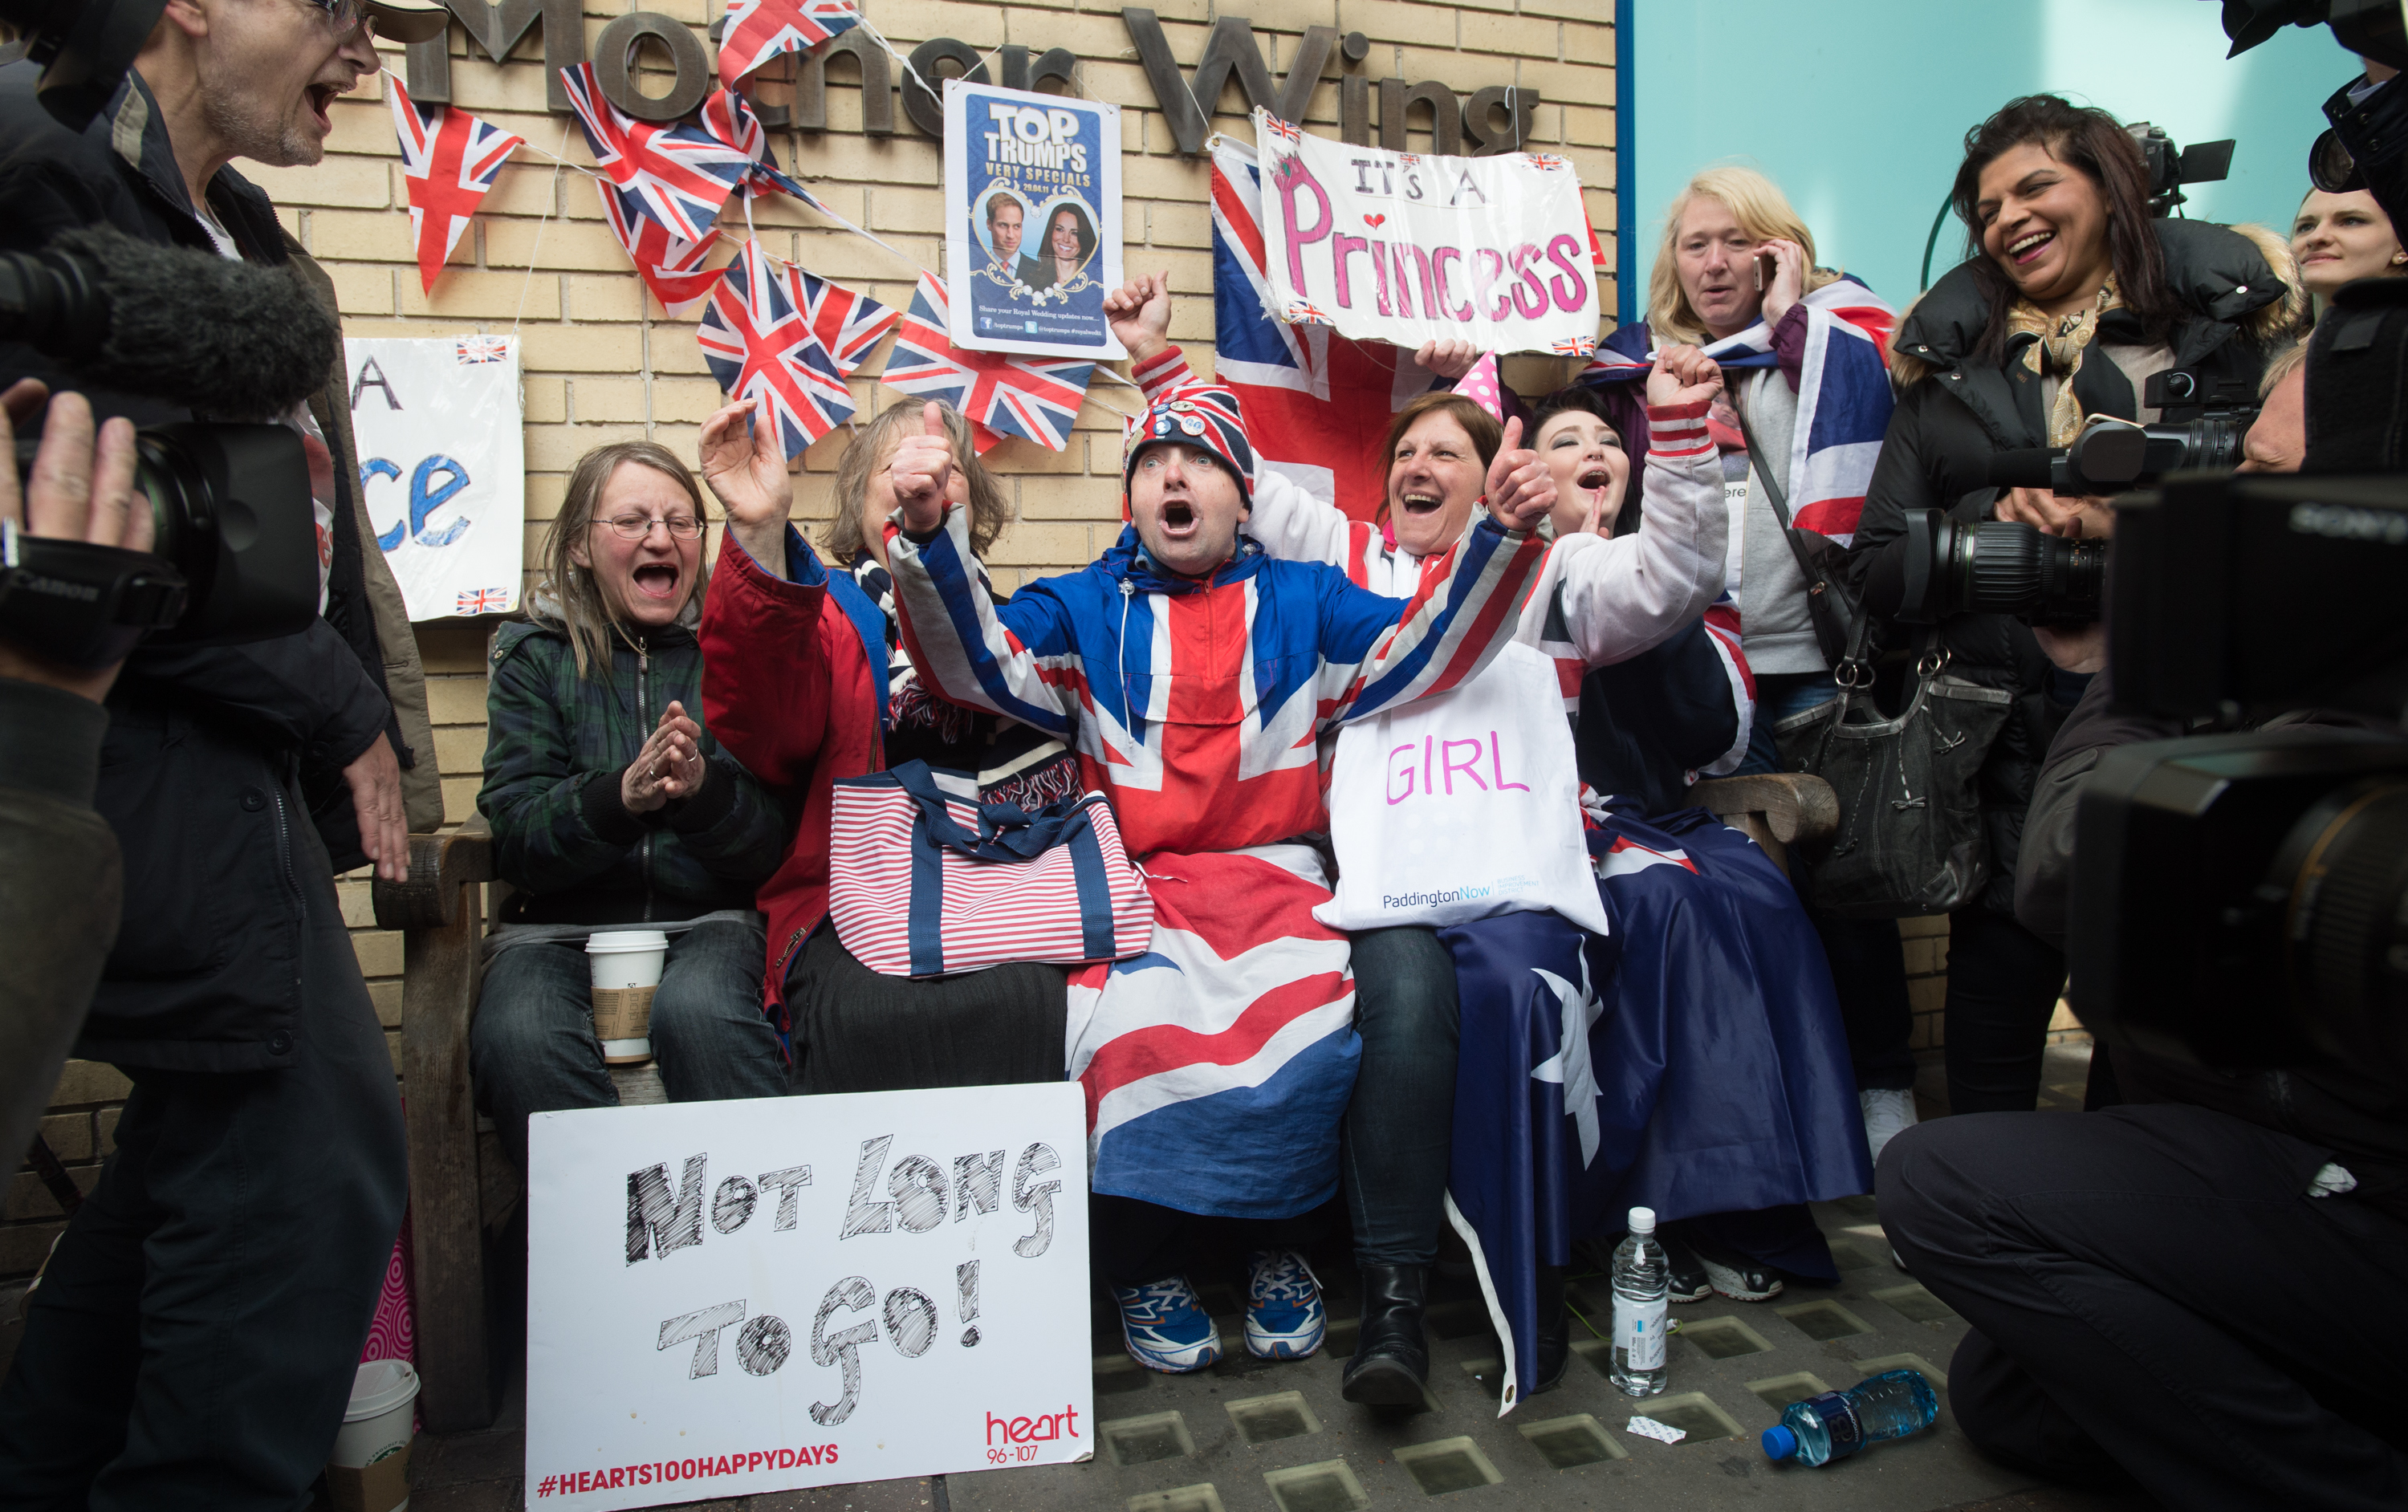 Royal fans celebrate the news the Duke and Duchess of Cambridge have given birth to a baby girl at St Mary's Hospital on May 2, 2015 in London, England. (Photo by Samir Hussein/WireImage)